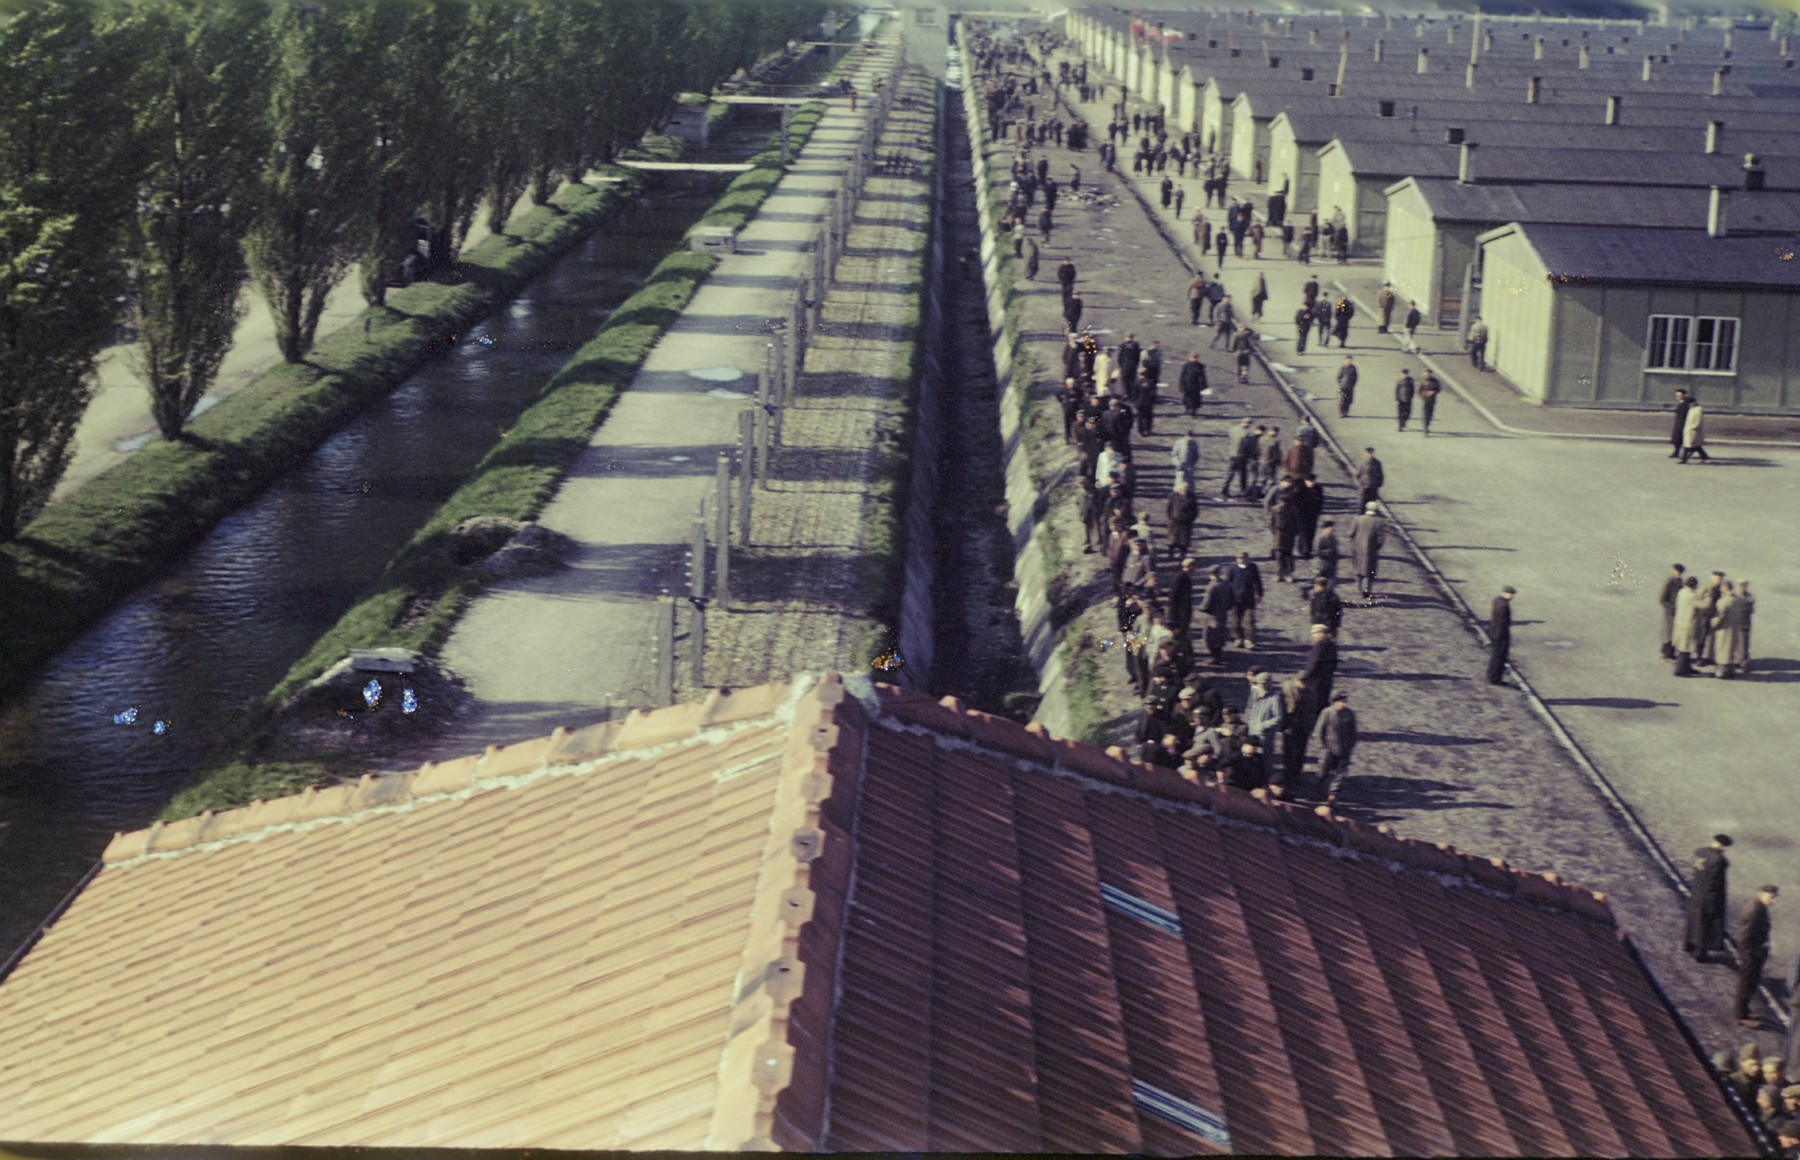 View from above of former prisoners walking along the main street of the newly liberated Dachau concentration camp parallel to the moat and the barbed wire fence.